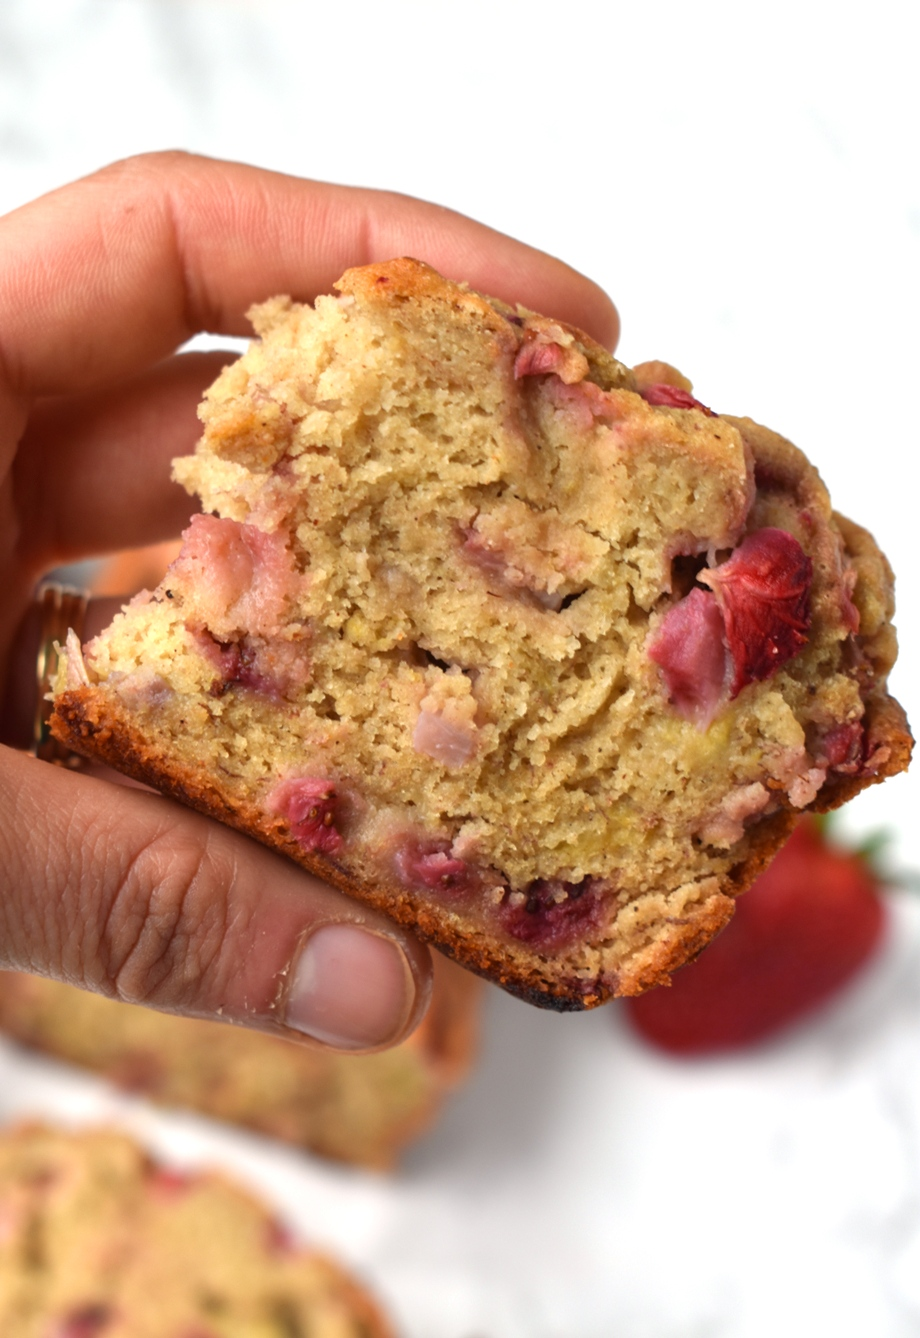 Slice of strawberry banana bread